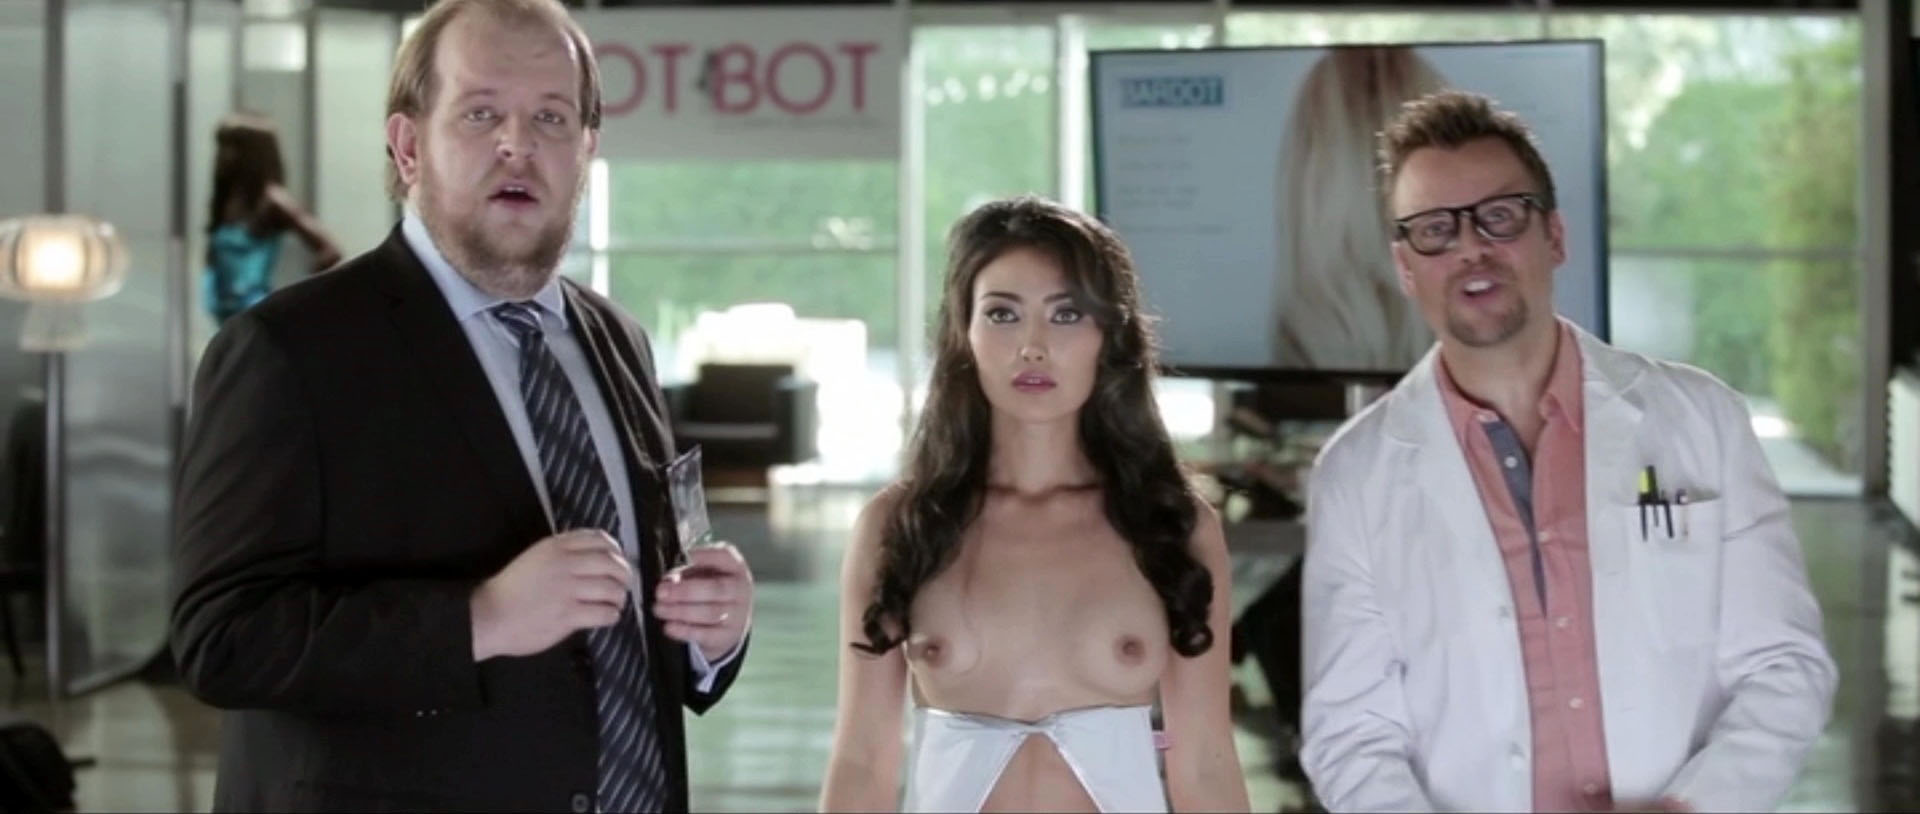 Chasty Ballesteros – Hot Bot (2016) HD 1080p